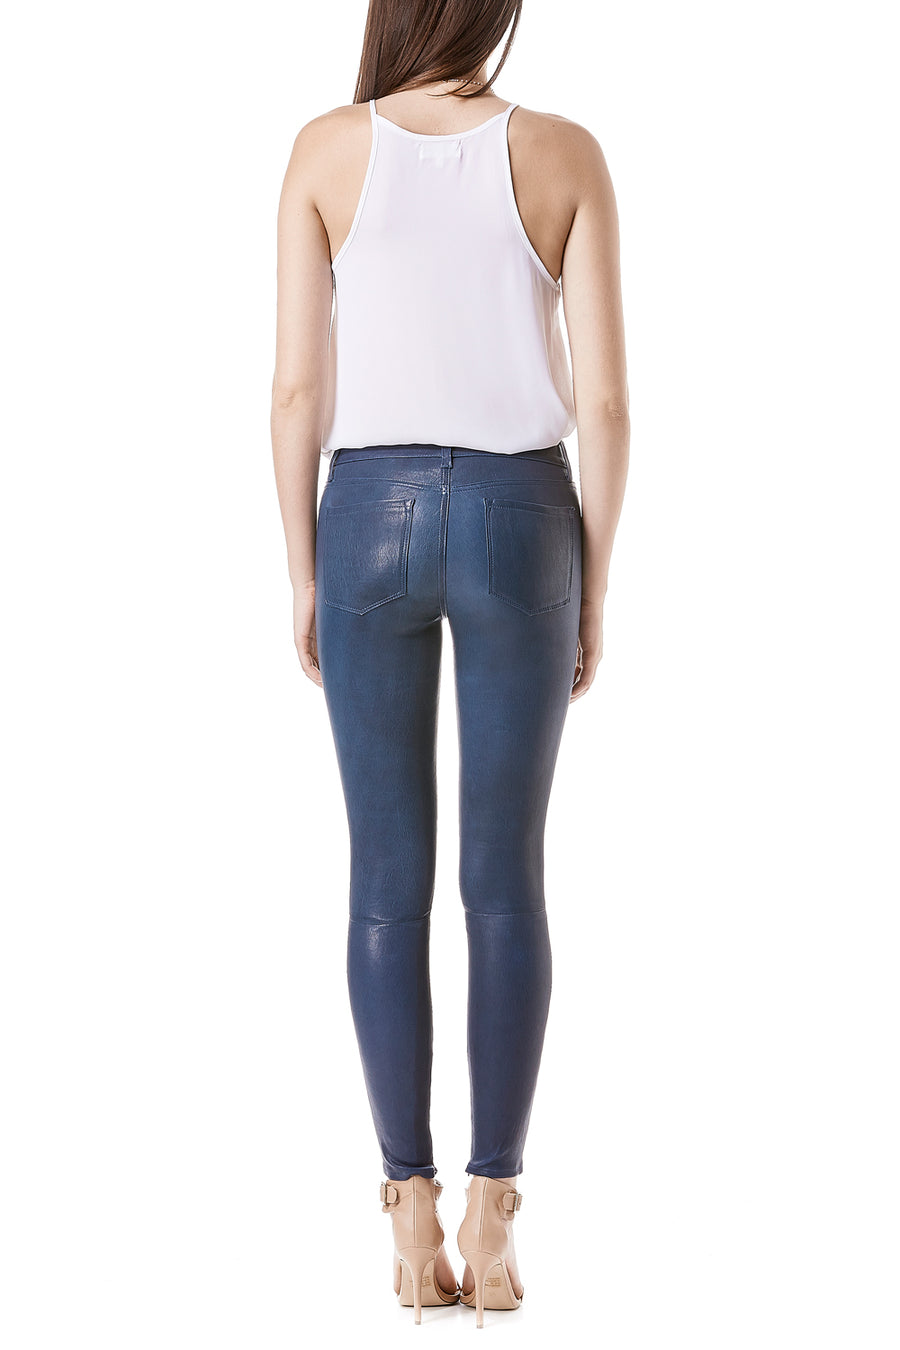 Janice Ultra Skinny - level99jeans